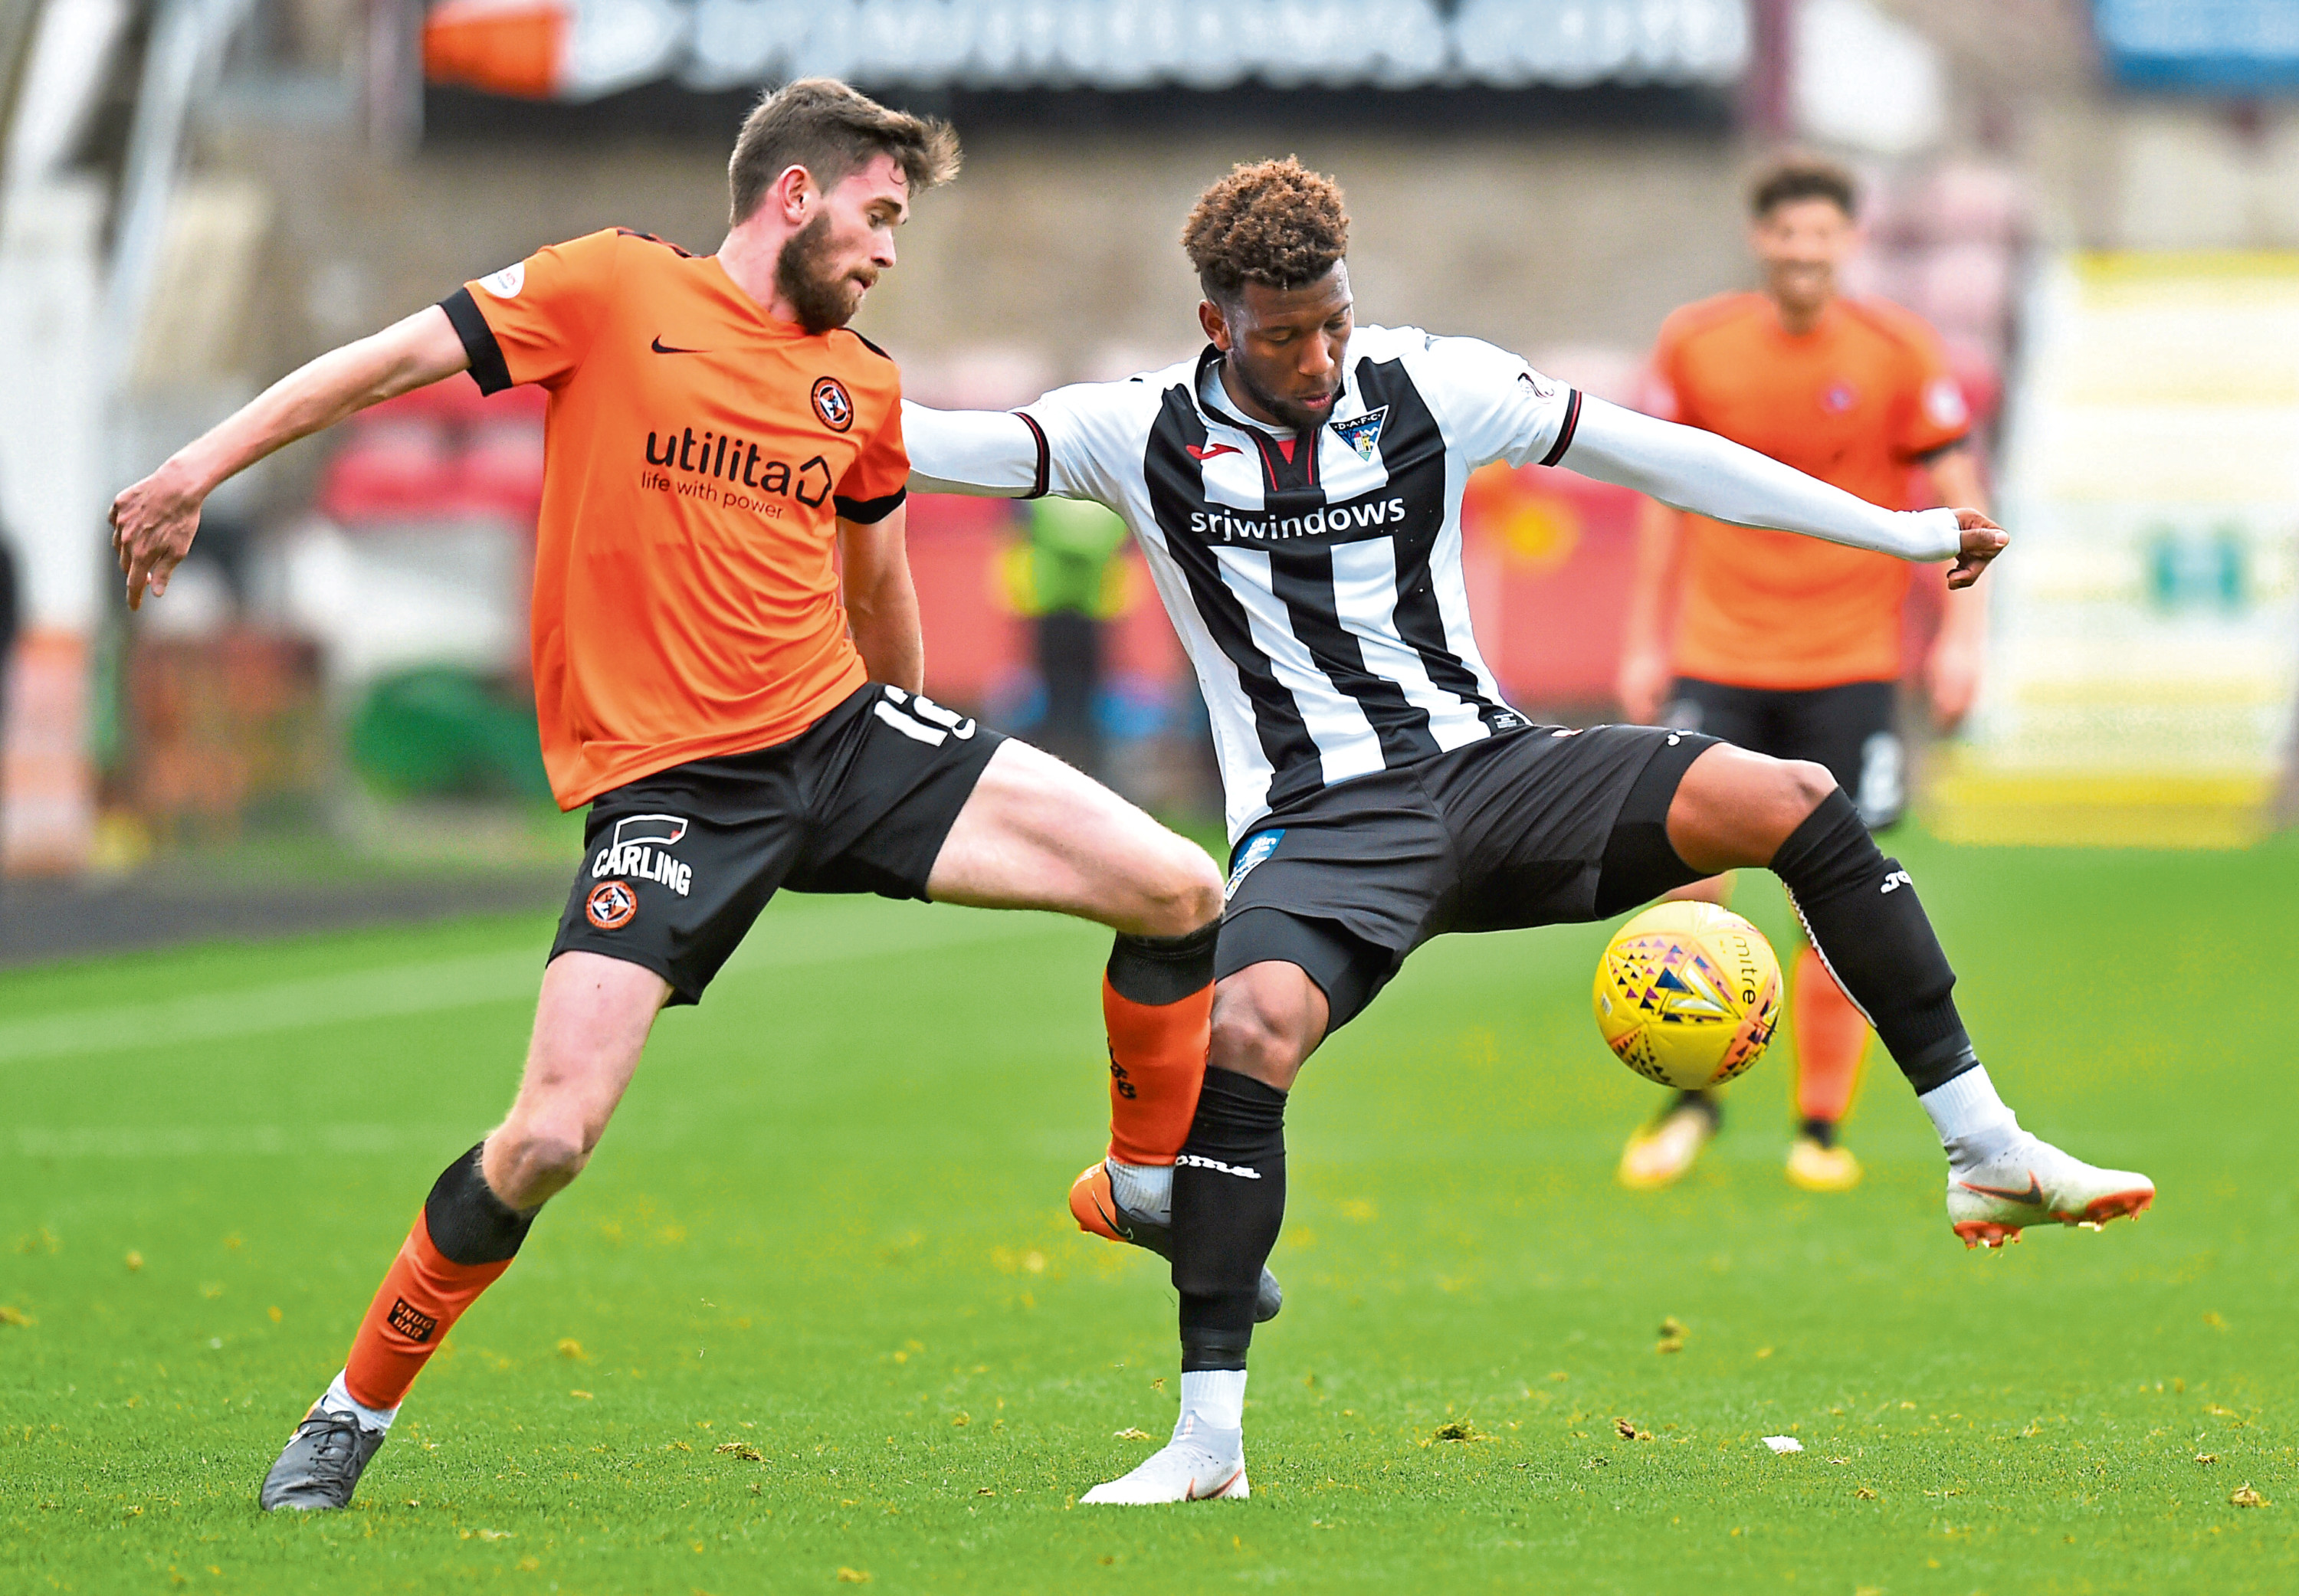 Dundee United defended from the front in their 2-0 win at East End Park against Dunfermline on Saturday.